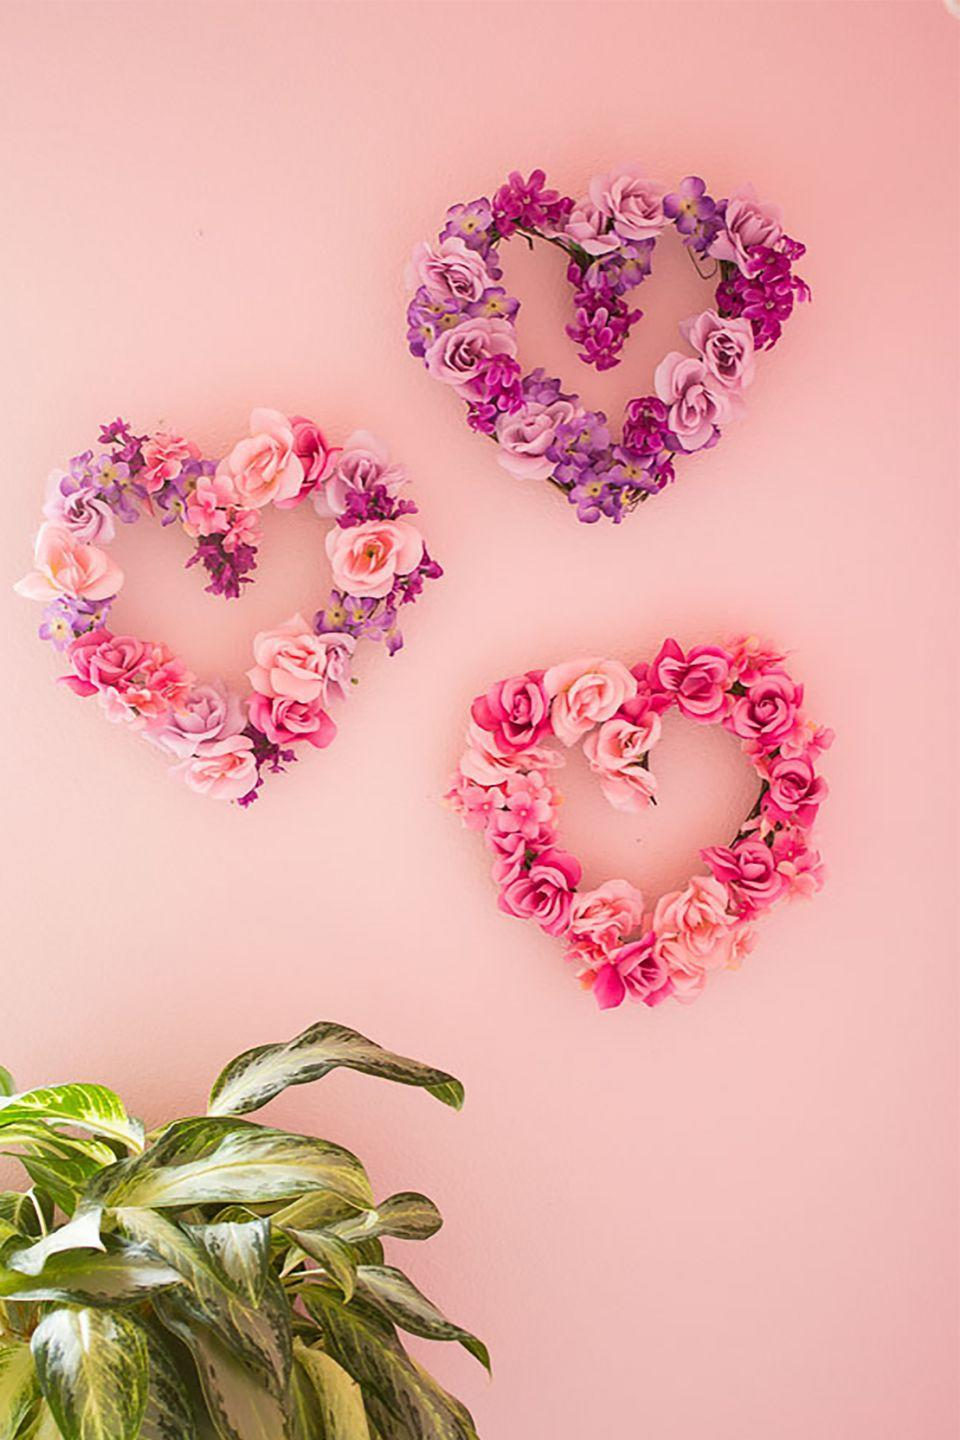 """<p>Use bunches of artificial flowers to make elegant wreaths for your walls or front door. </p><p><strong>Get the tutorial at <a href=""""http://www.designimprovised.com/2015/01/diy-floral-hearts.html?m=1"""" rel=""""nofollow noopener"""" target=""""_blank"""" data-ylk=""""slk:Design Improvised"""" class=""""link rapid-noclick-resp"""">Design Improvised</a>.</strong> </p><p><strong><span class=""""redactor-invisible-space""""><a class=""""link rapid-noclick-resp"""" href=""""https://www.amazon.com/s/ref=nb_sb_noss_2?url=search-alias%3Darts-crafts&field-keywords=heart+wreath+form&tag=syn-yahoo-20&ascsubtag=%5Bartid%7C10050.g.2971%5Bsrc%7Cyahoo-us"""" rel=""""nofollow noopener"""" target=""""_blank"""" data-ylk=""""slk:SHOP HEART WREATH FORMS"""">SHOP HEART WREATH FORMS</a><br></span></strong></p>"""